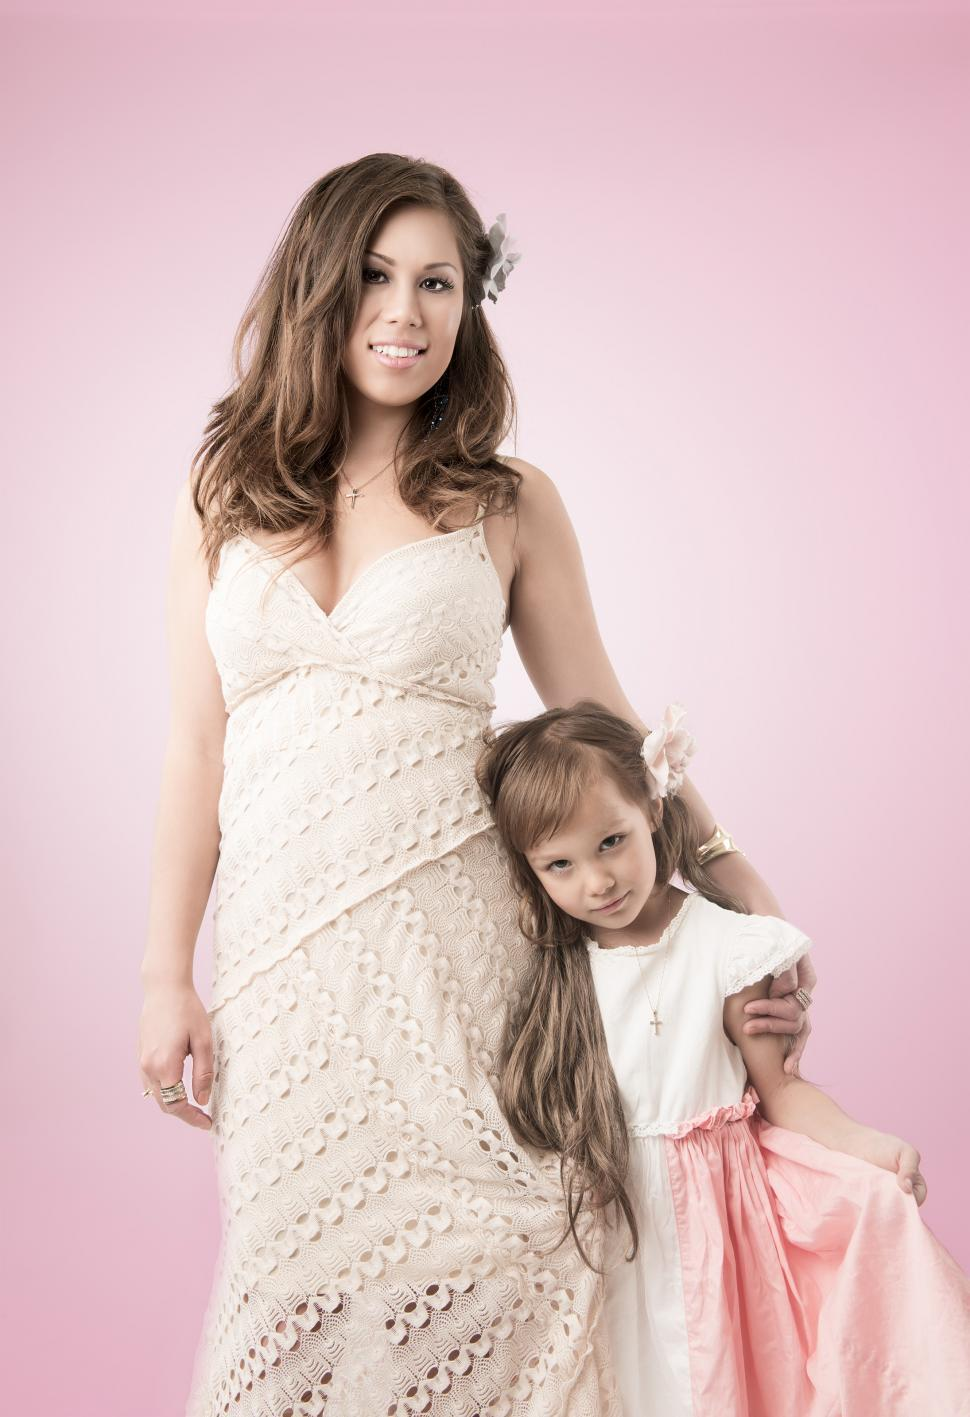 Download Free Stock HD Photo of Mother and Daughter Online